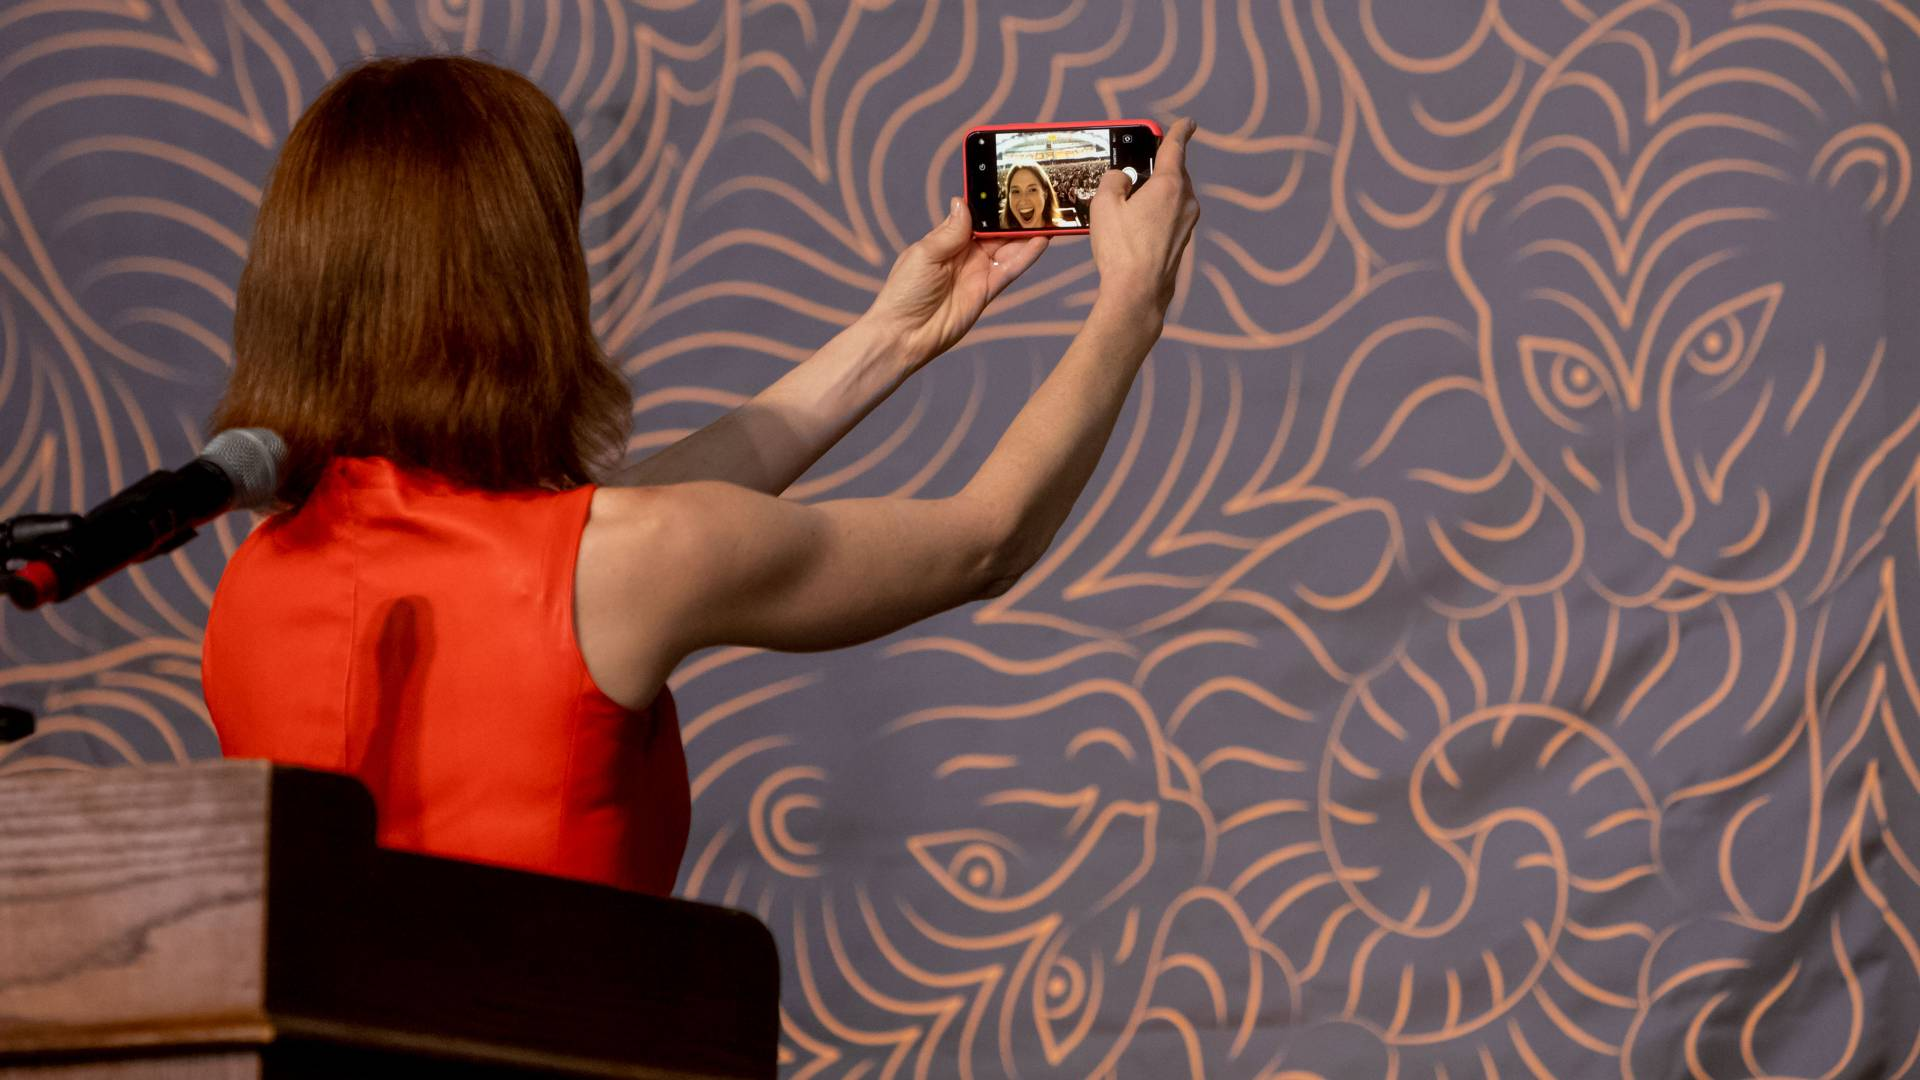 Ellie Kemper taking a selfie